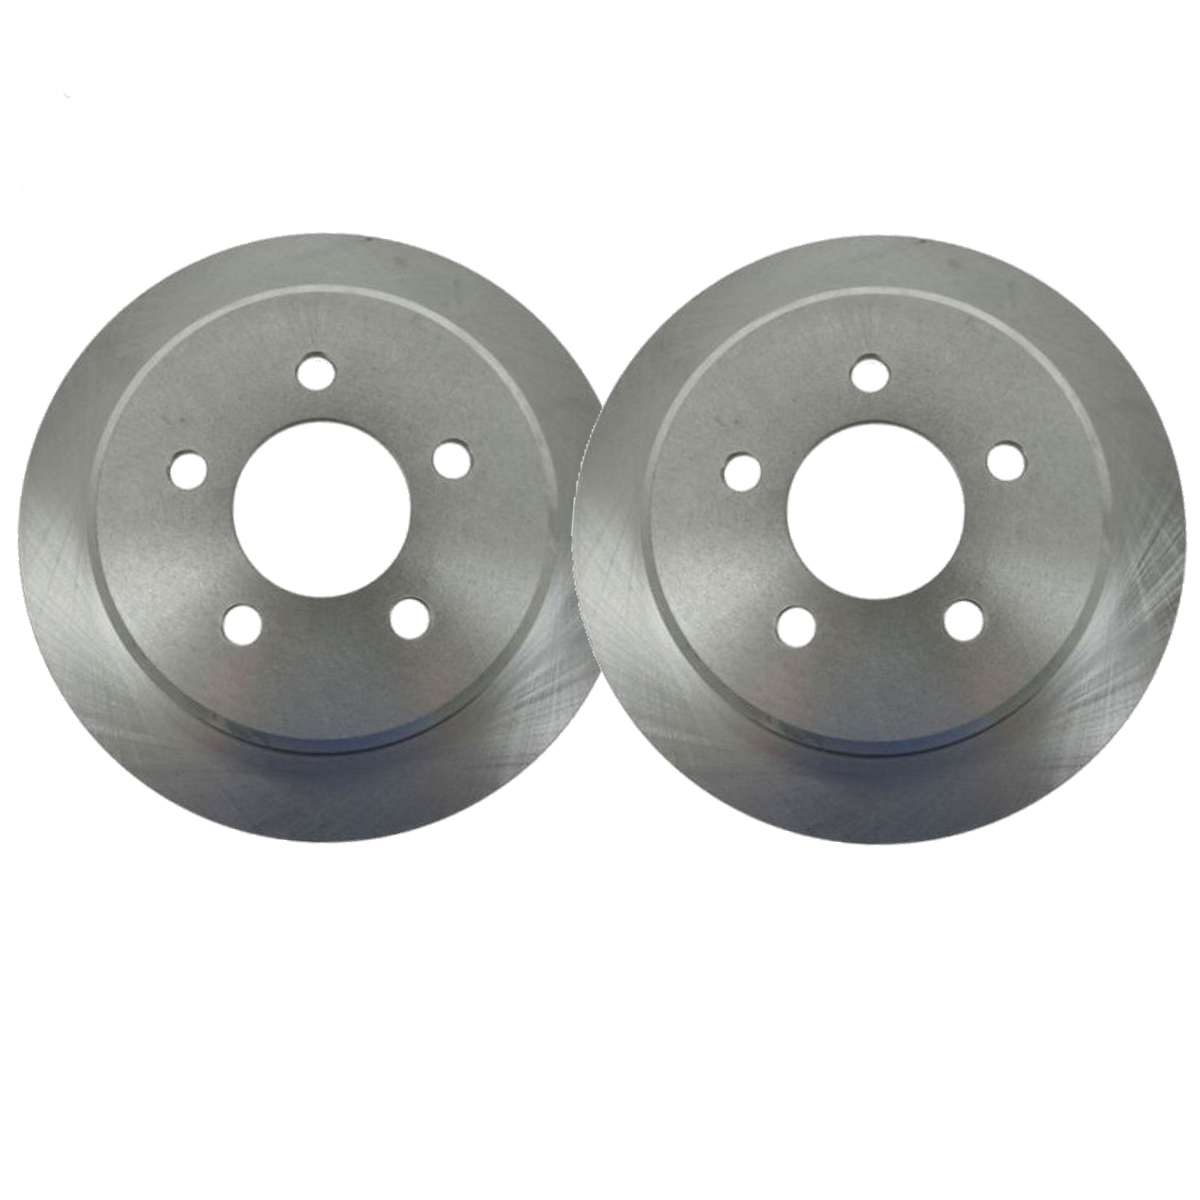 Front Brake Rotors Pair for 305mm Size Models – See Fitment